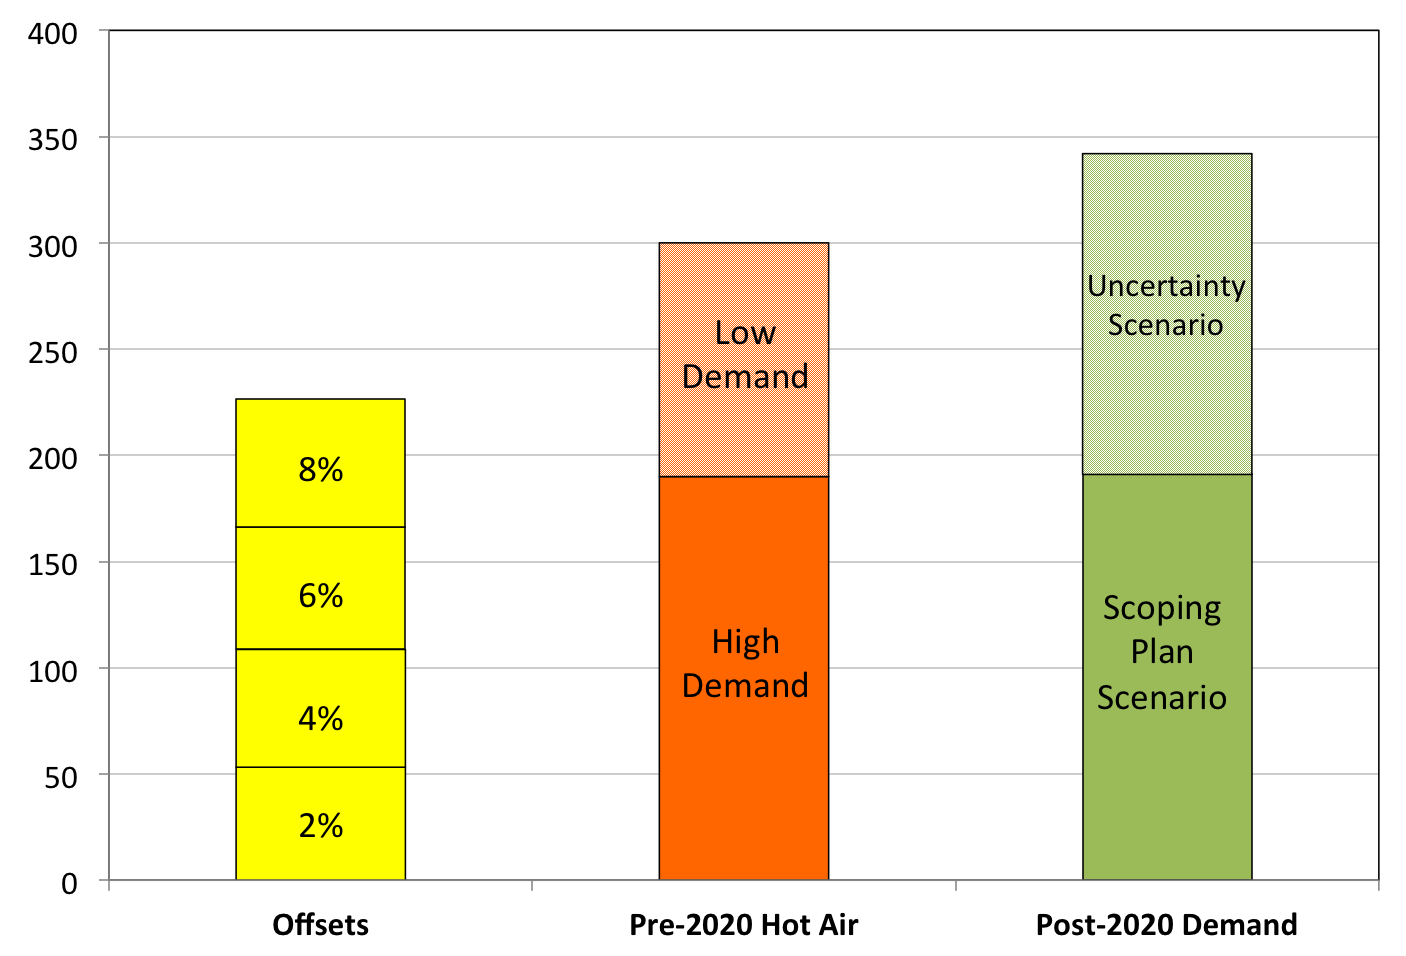 Supply of carbon offsets, pre-2020 hot air allowances, and post-2020 demand   Units: million compliance instruments (MMtCO2e)